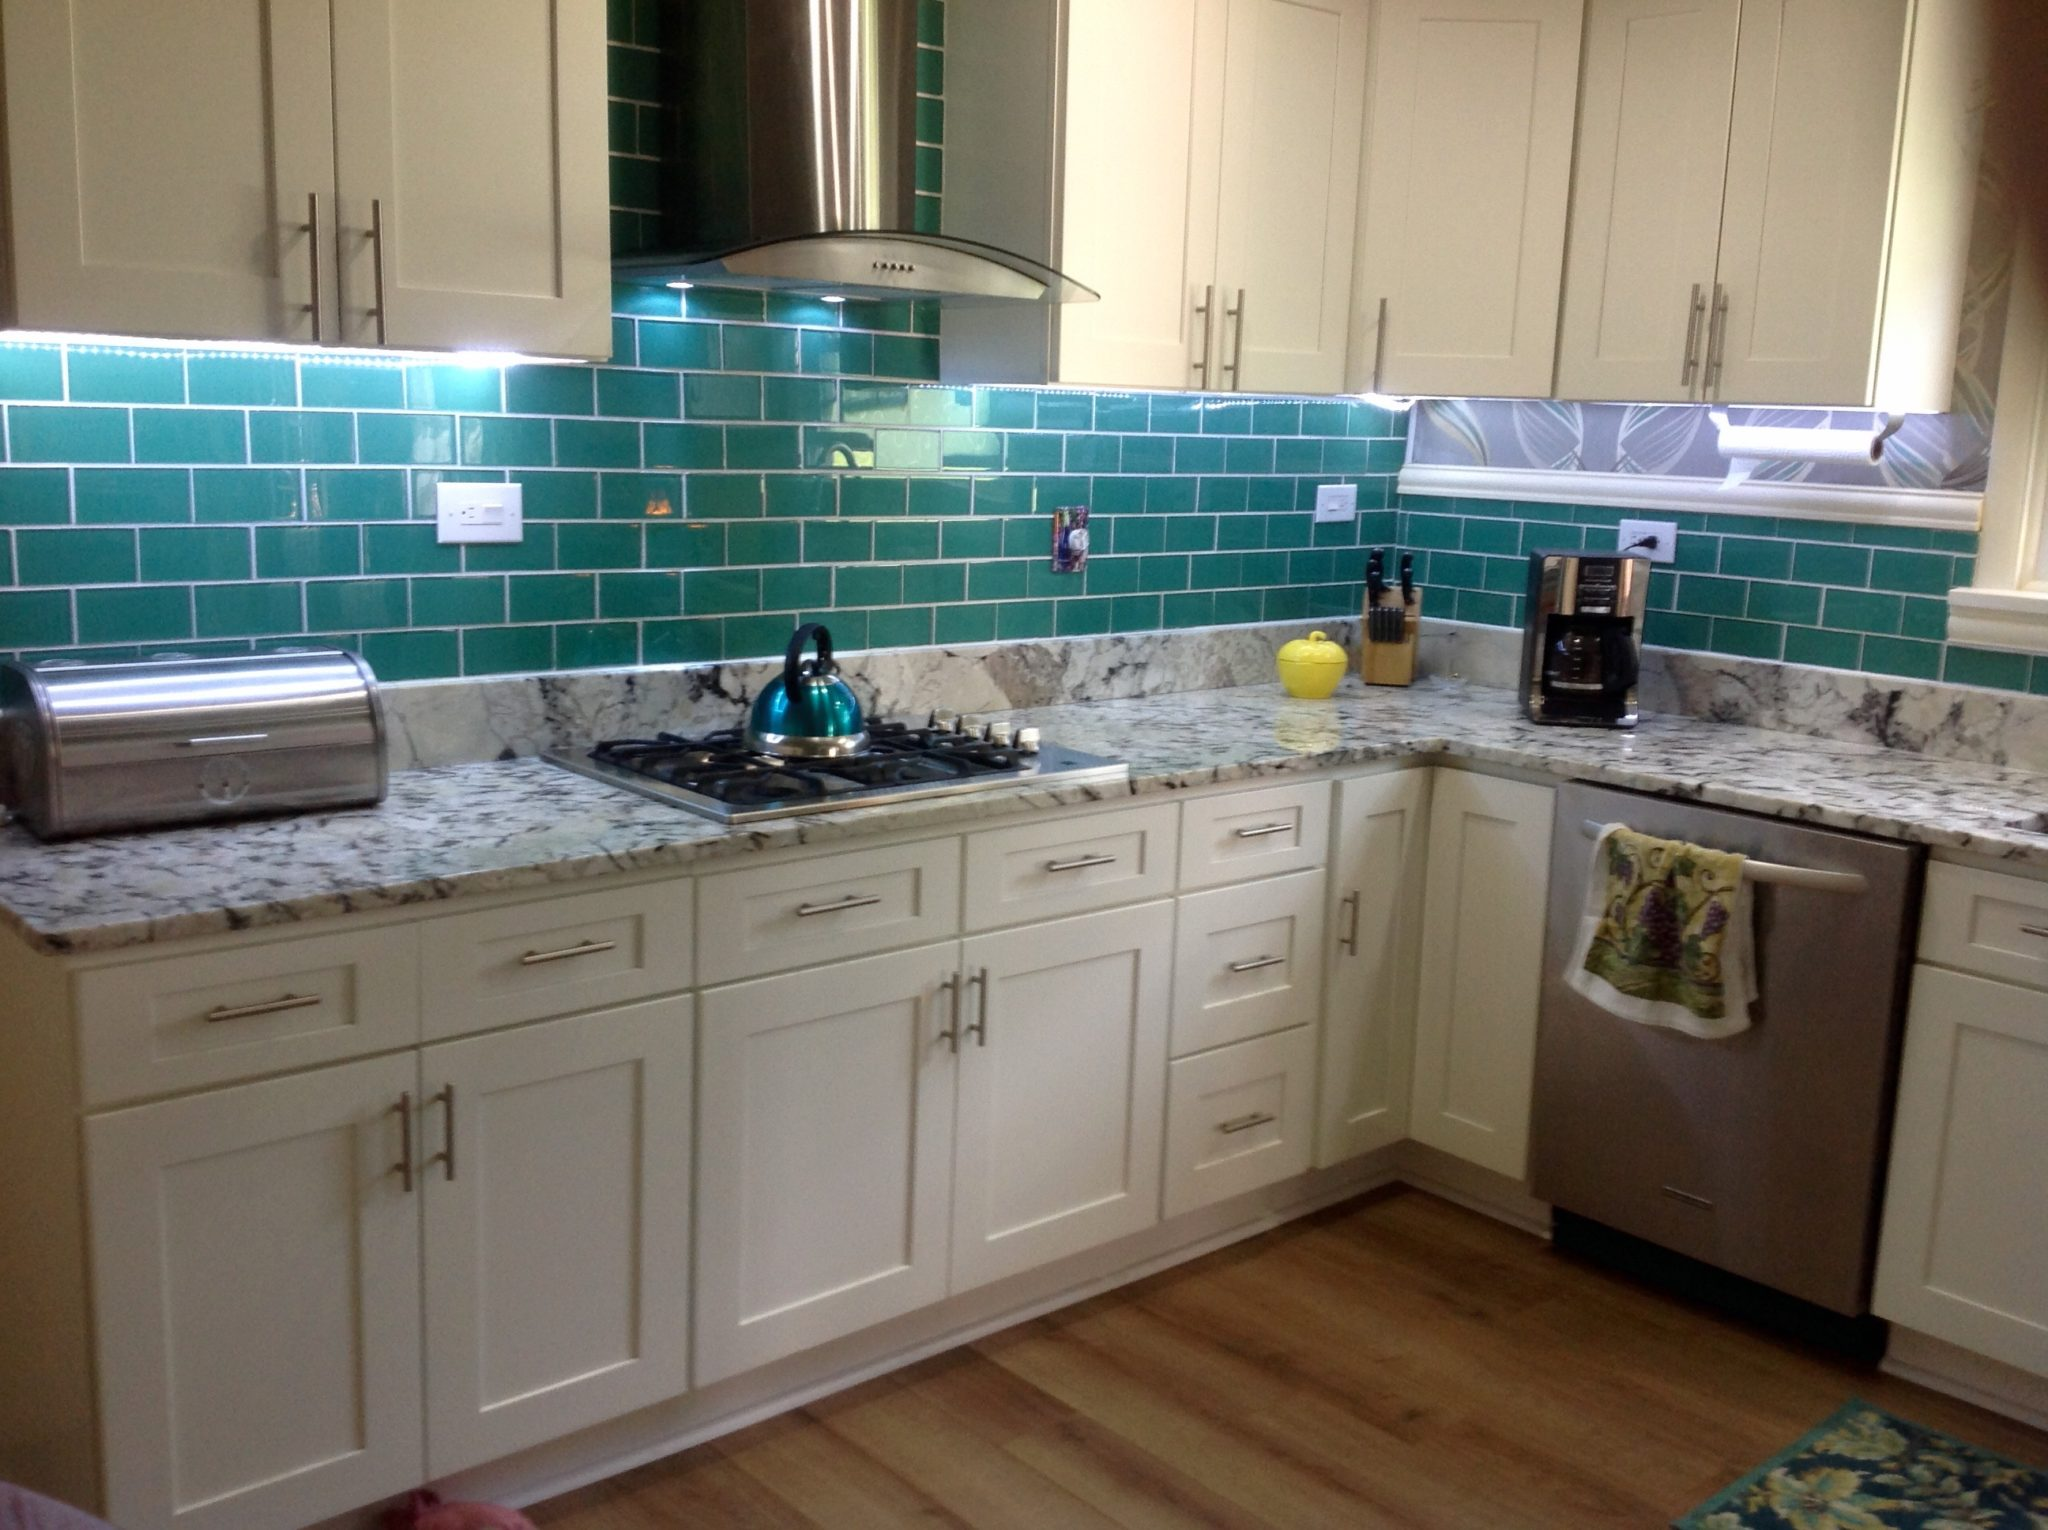 7 different ways to use subway tiles in your home